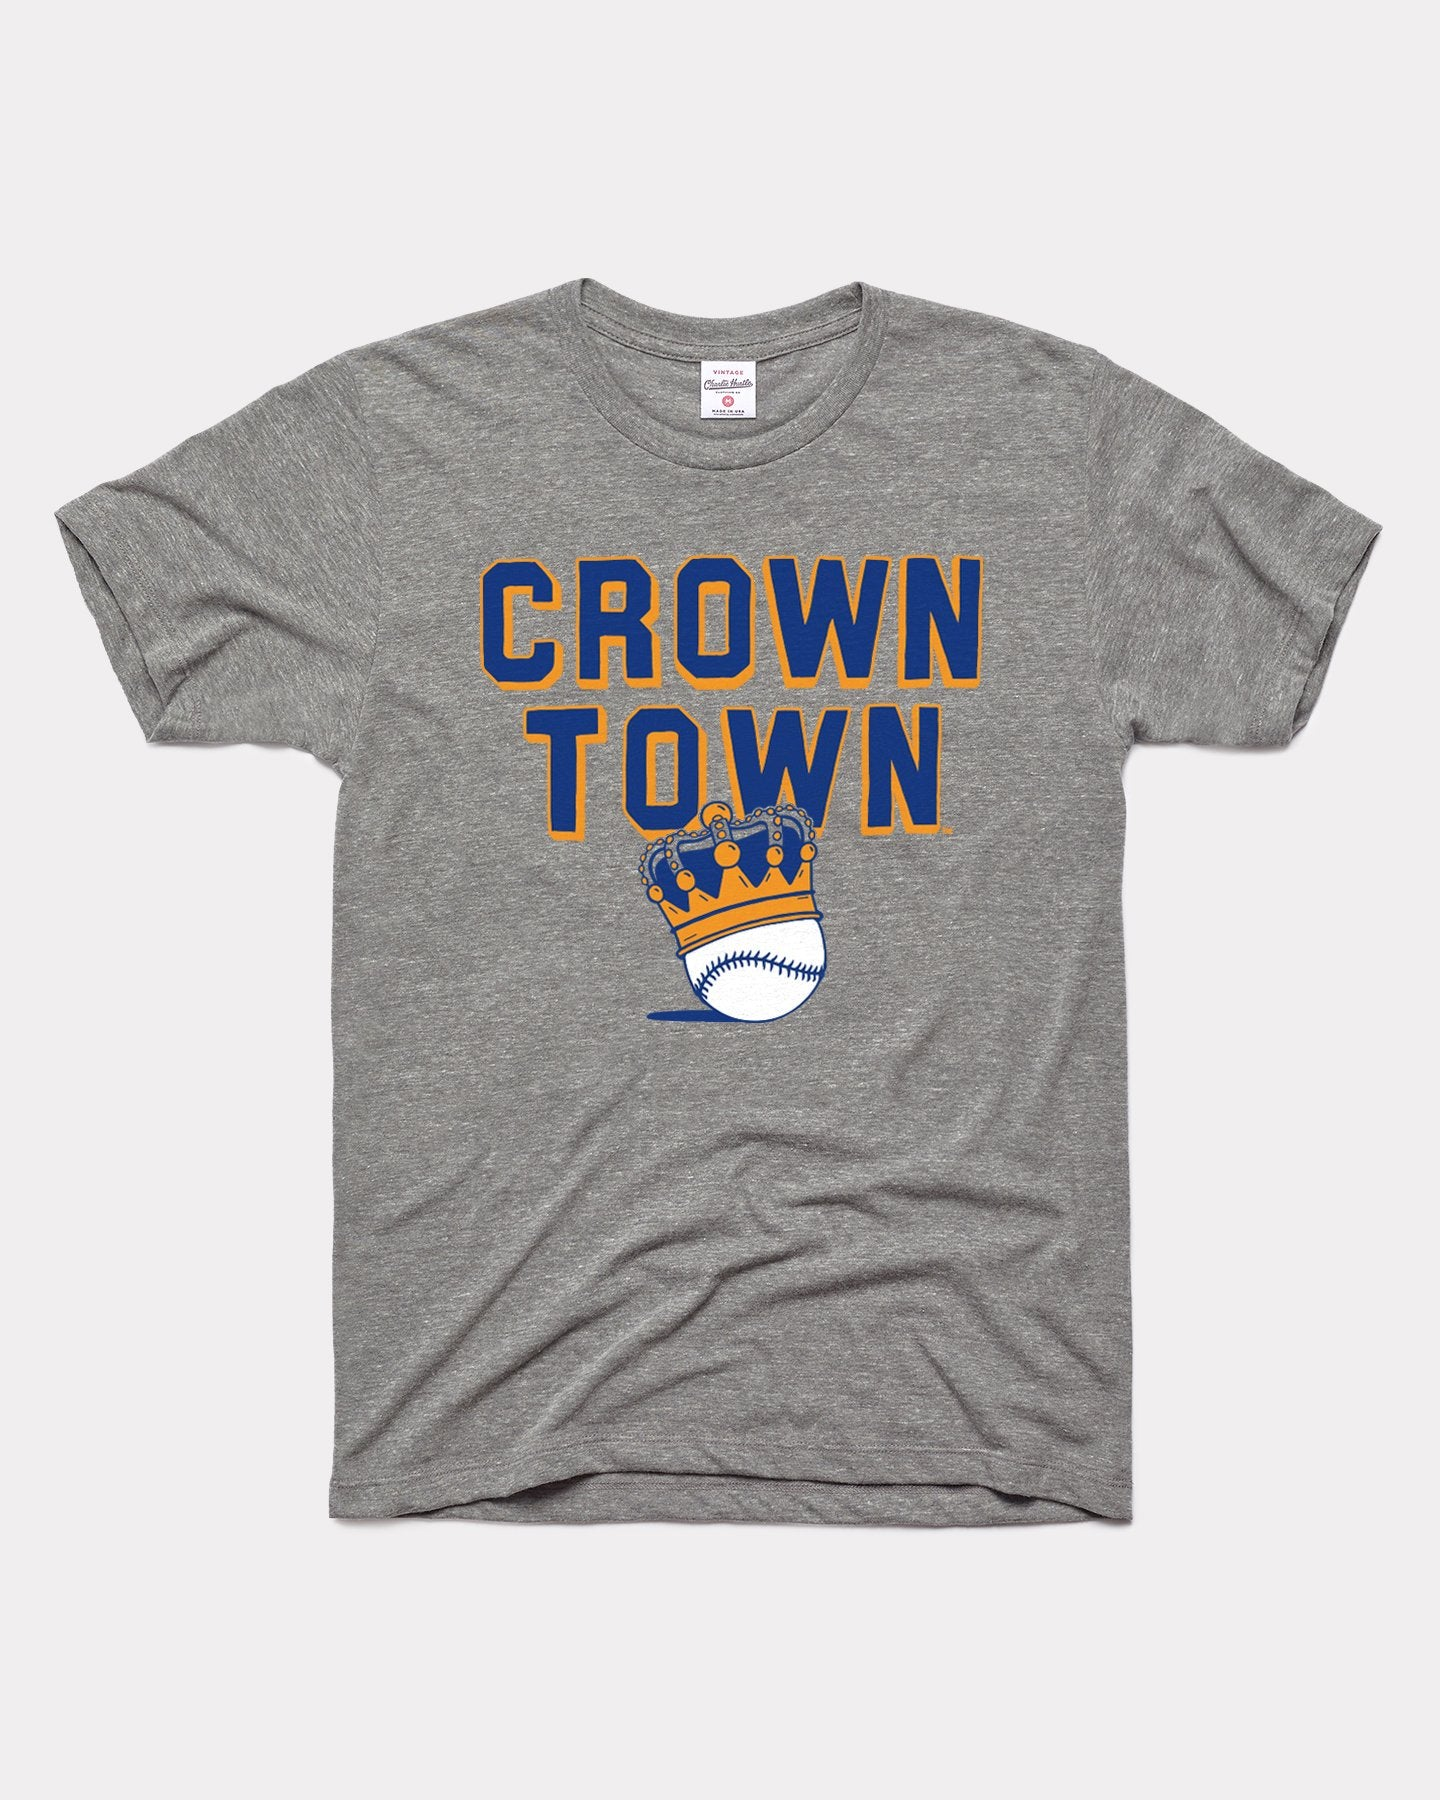 Grey Kansas City Baseball Crown Town Vintage T-Shirt